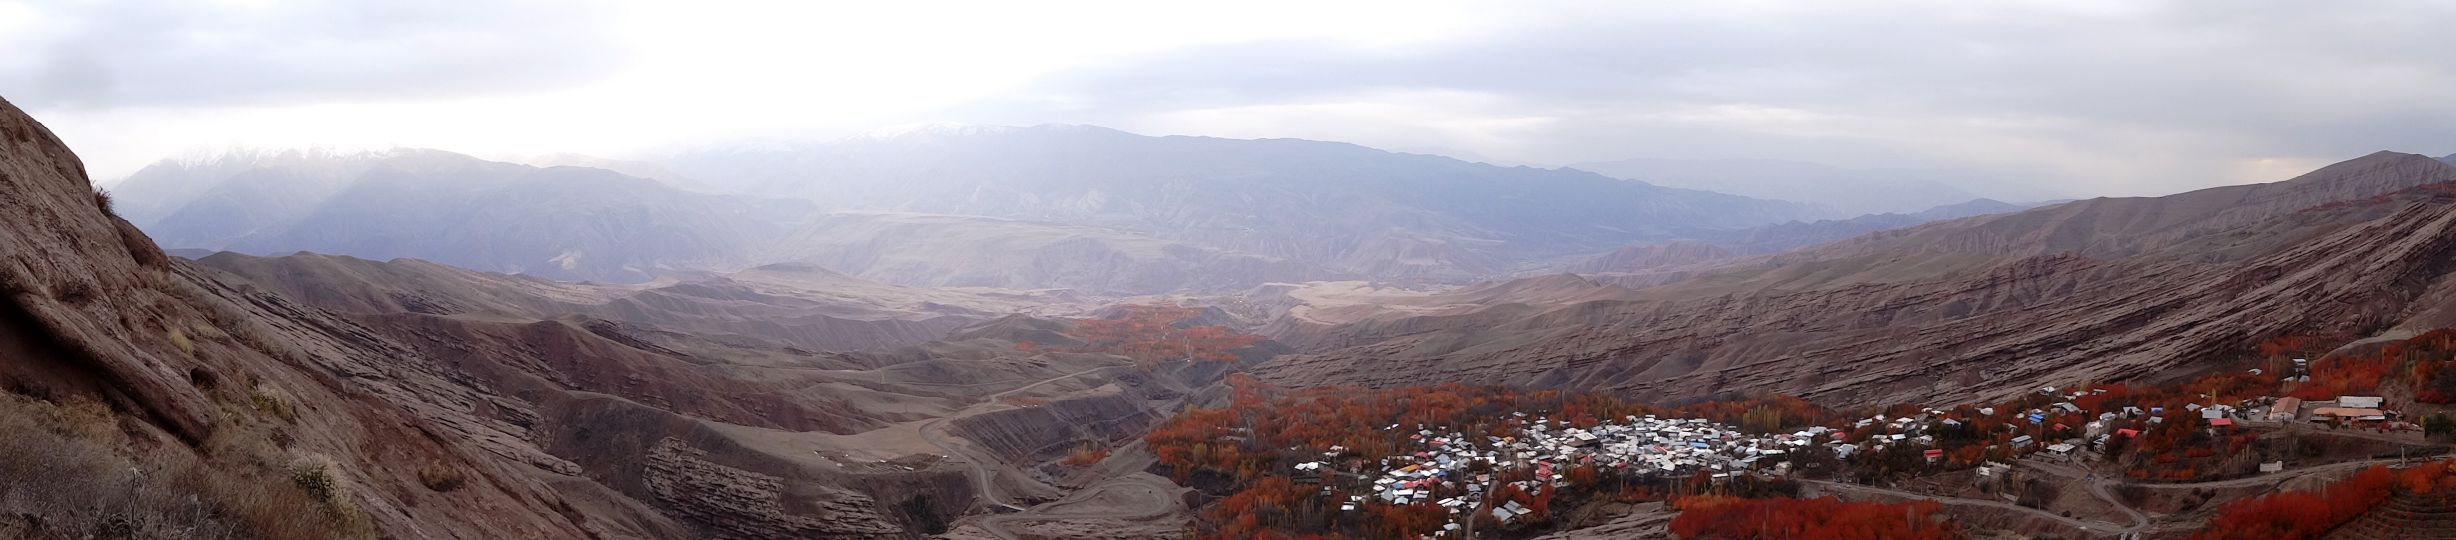 Alamut - view of the cherry trees in beautiful red autumn colours from Alamut Castle